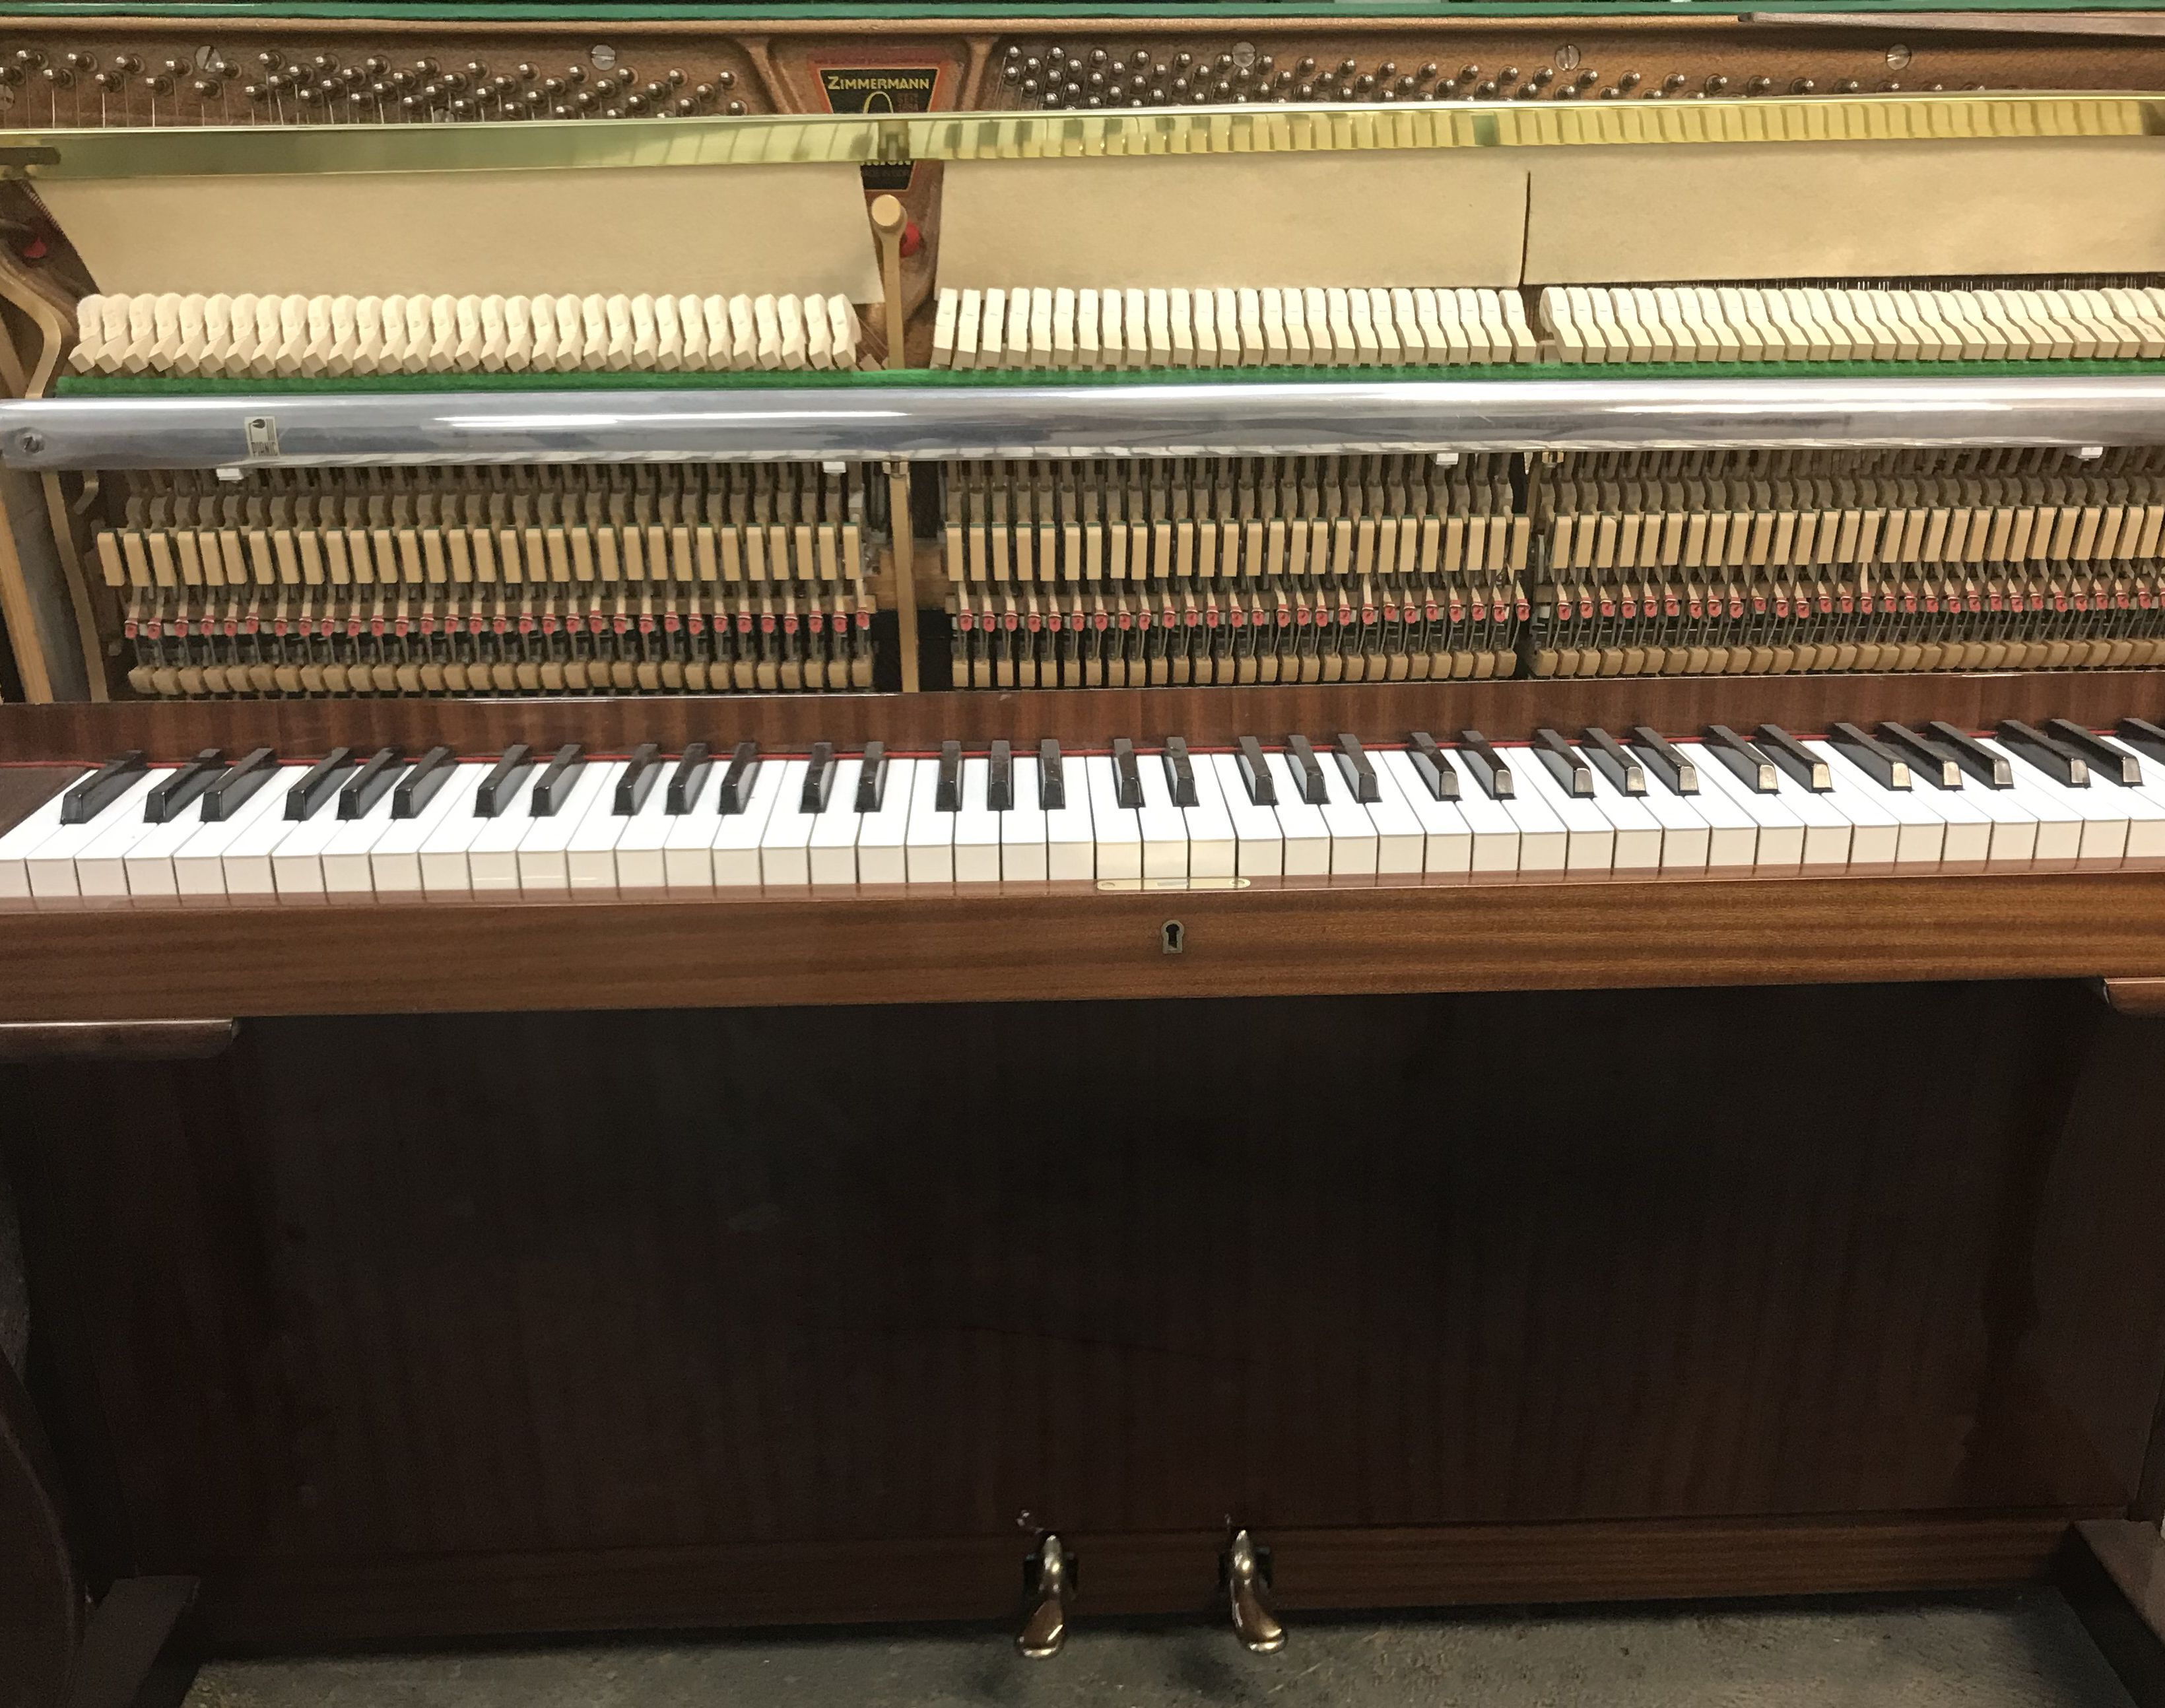 It's Regulation moment: Play better music! Shackleford Pianos can